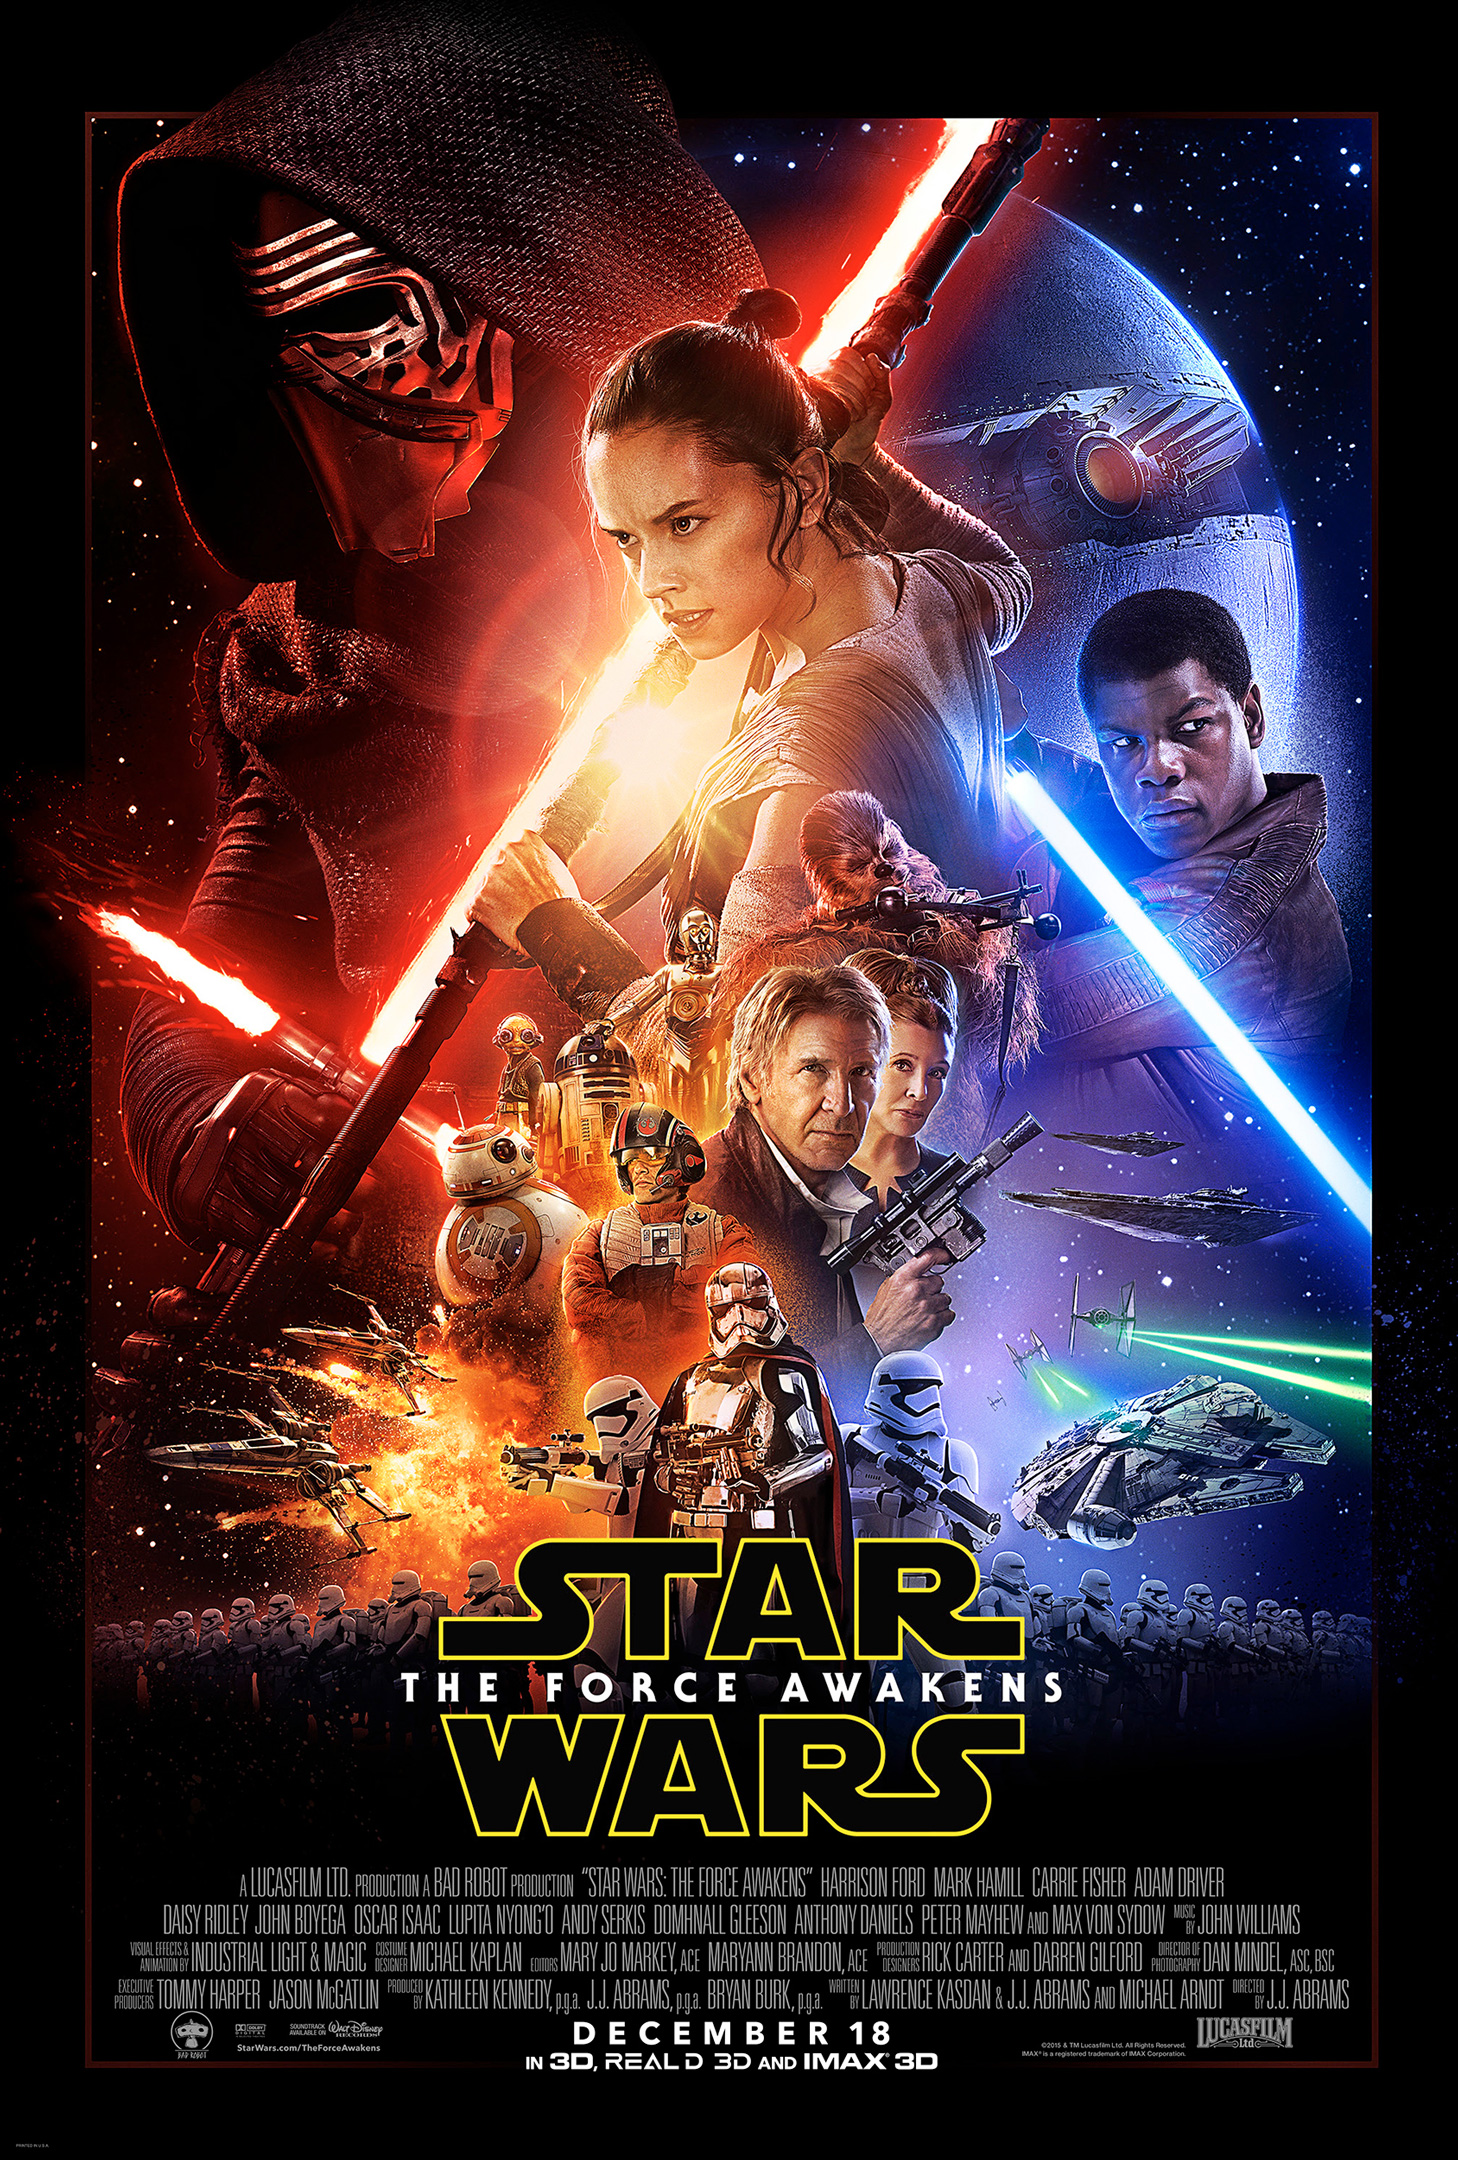 Star Wars The Force Awakens. Image Courtesy of starwars.com.